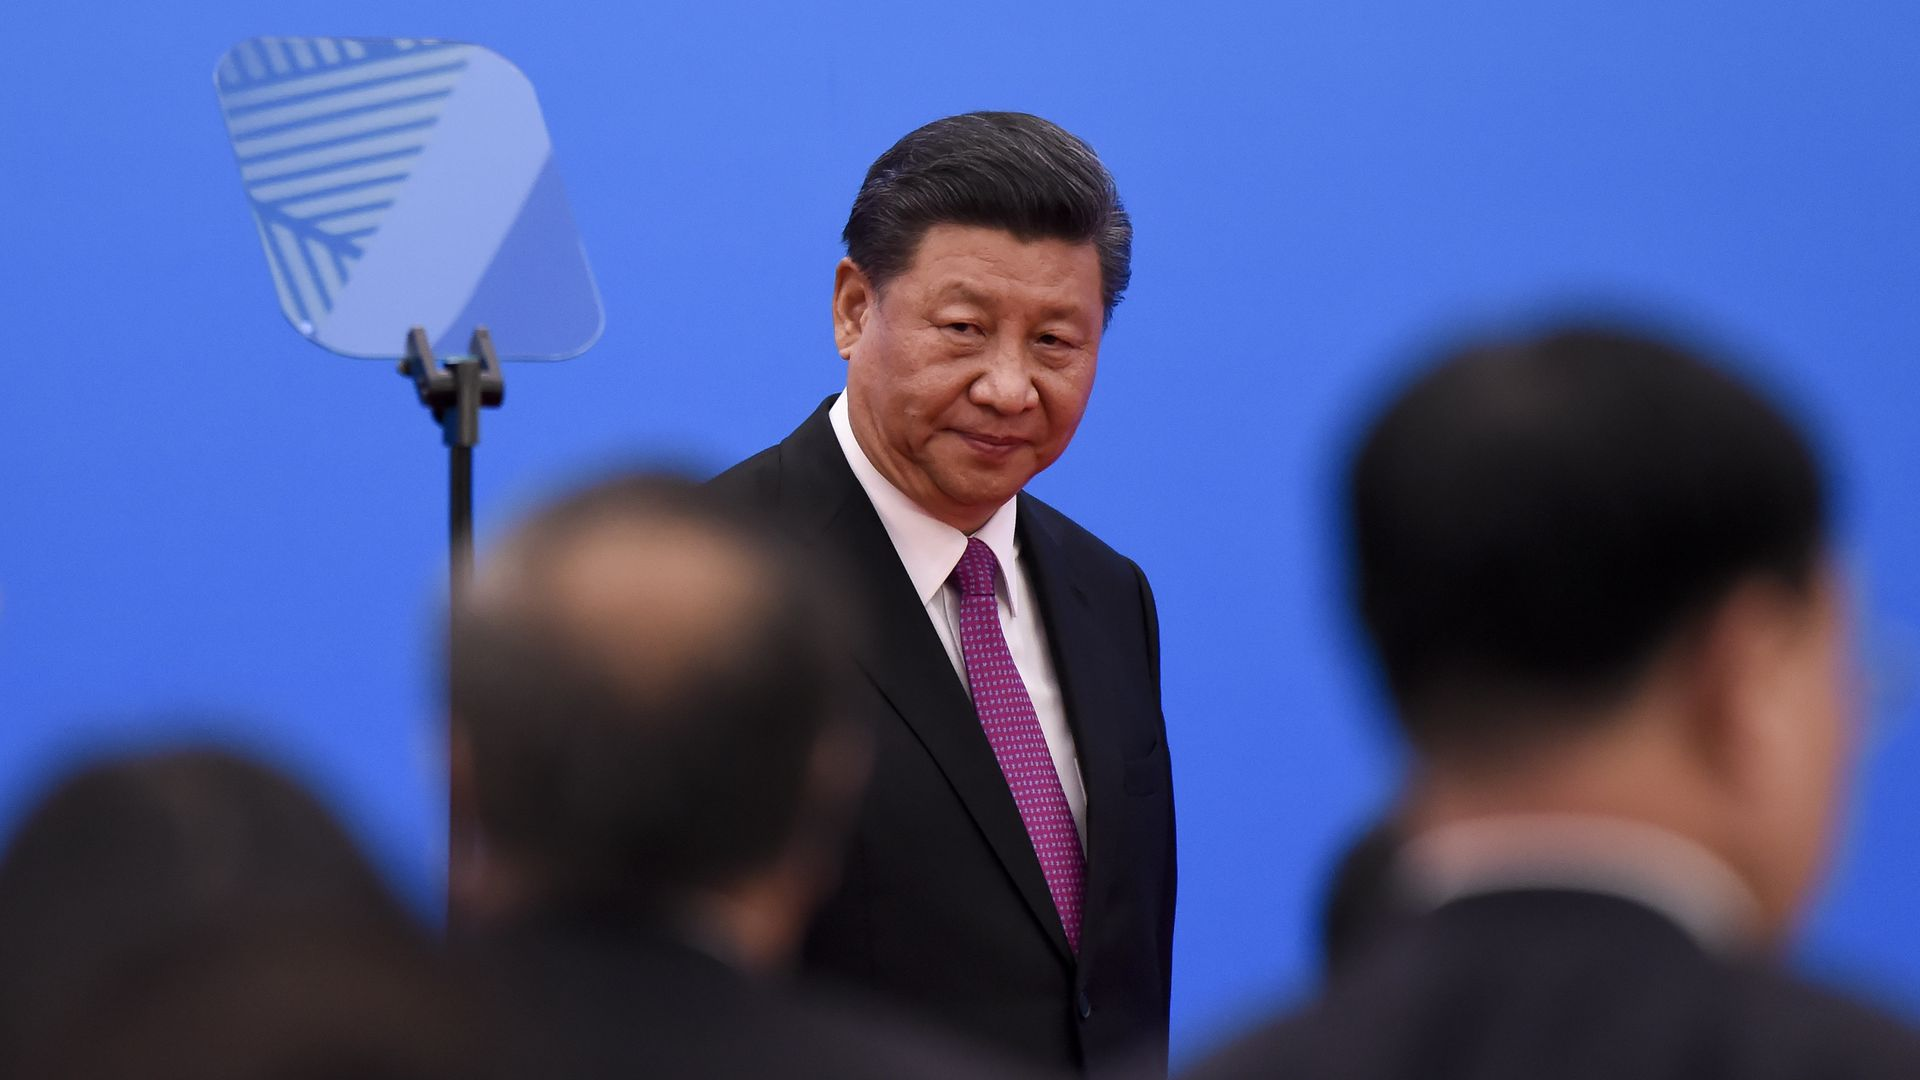 In this image, Xi Jinping looks to the left while walking on a stage.